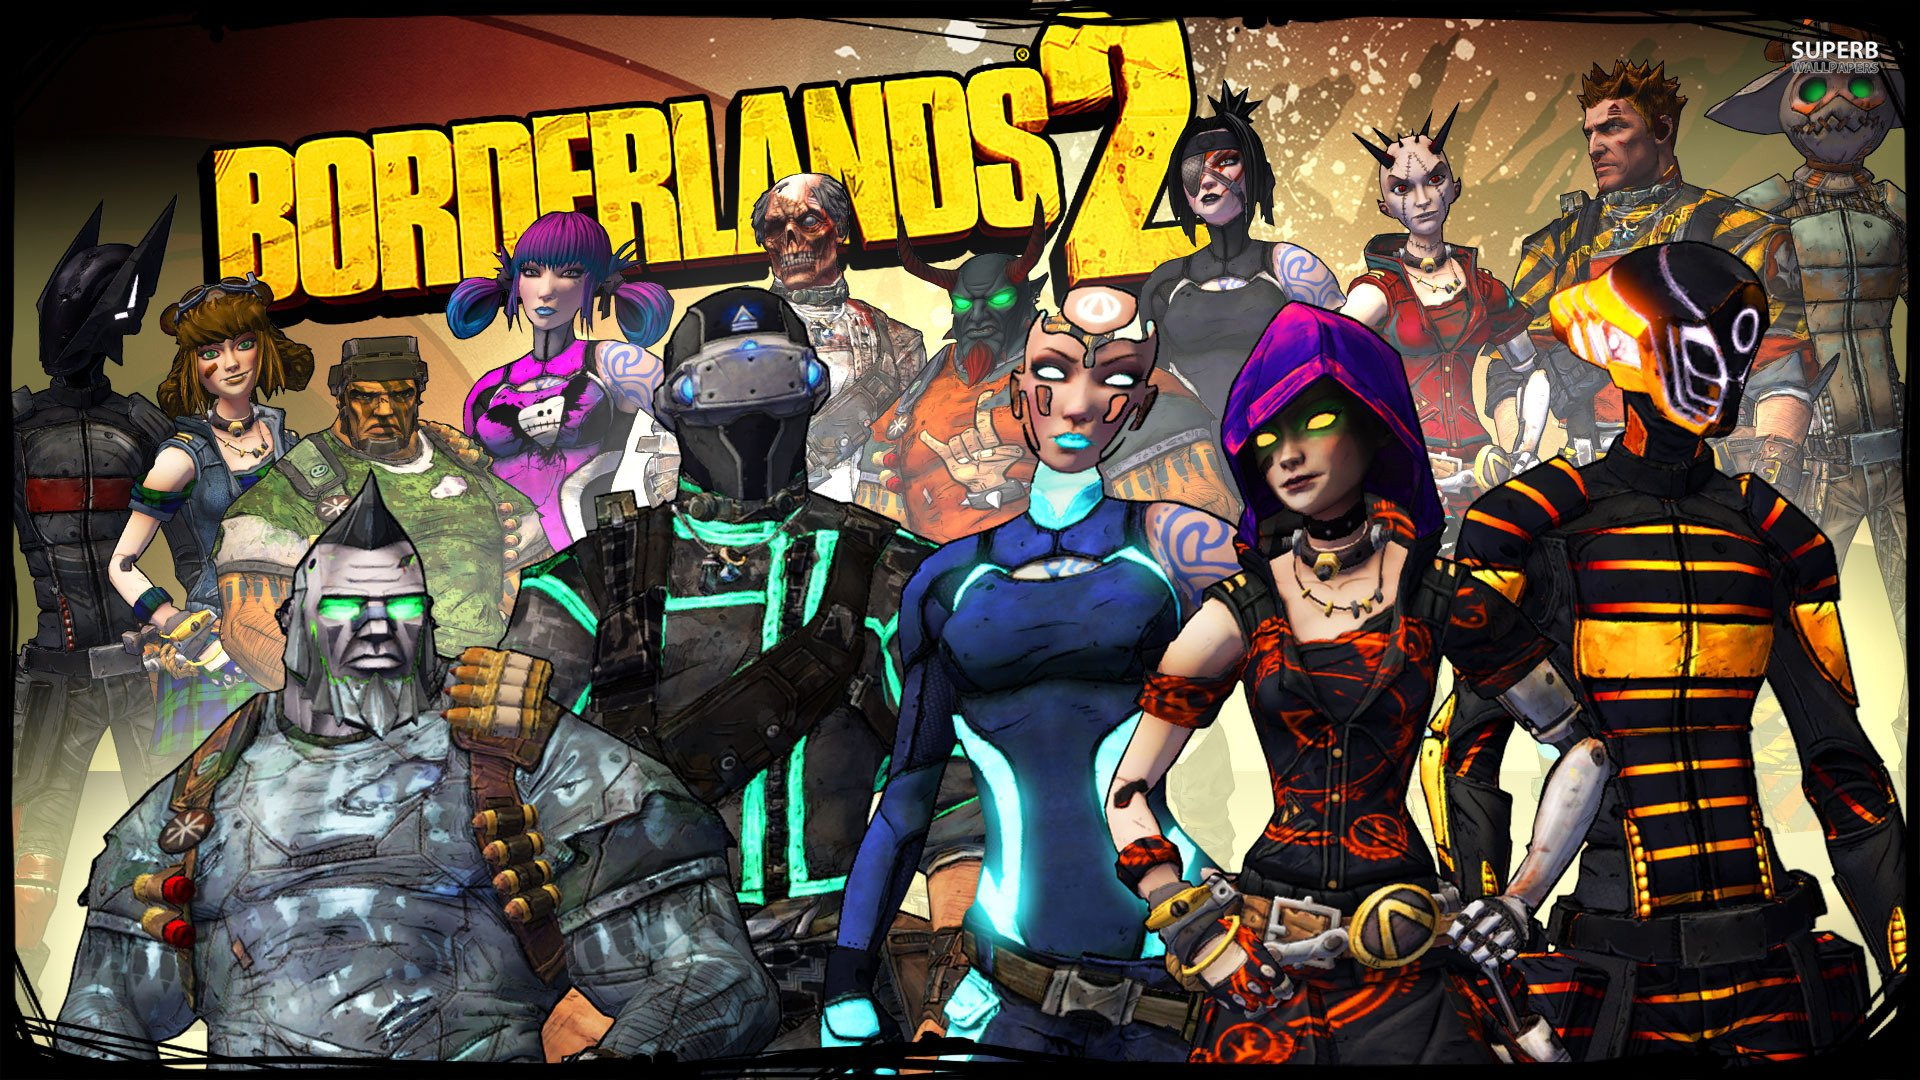 Borderlands 2 Hd Wallpaper Background Image 1920x1080 Id